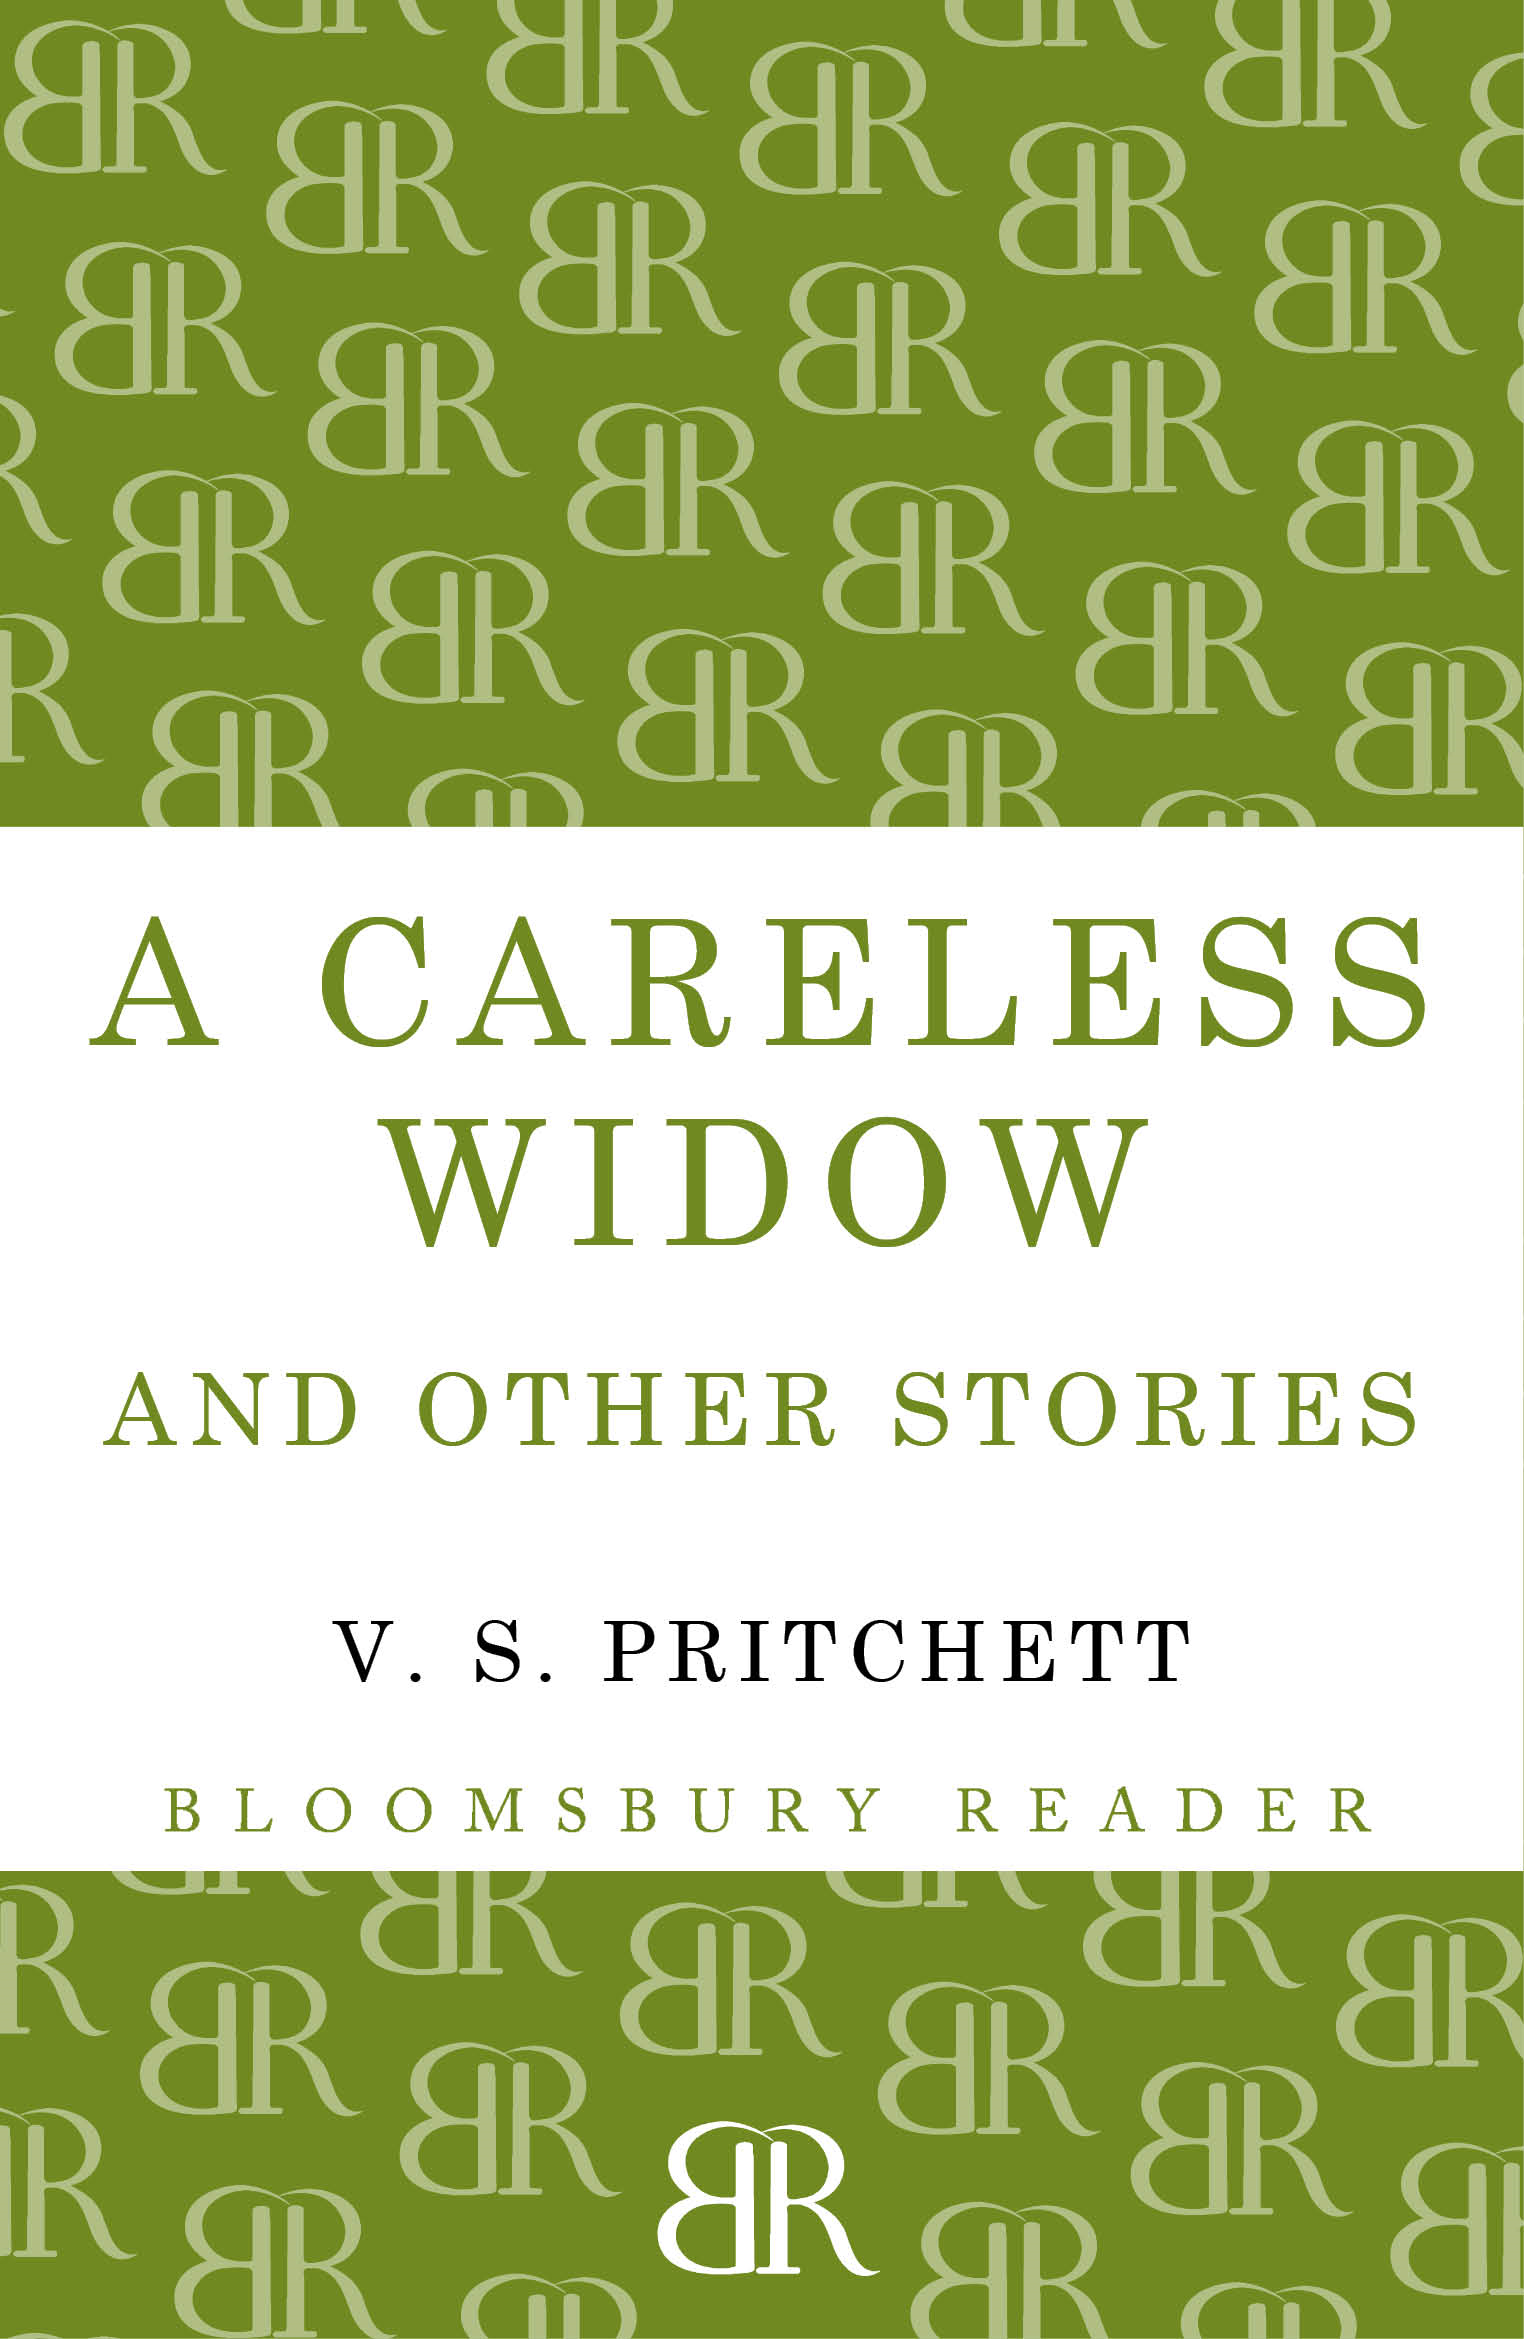 A Careless Widow and other stories By: V.S. Pritchett